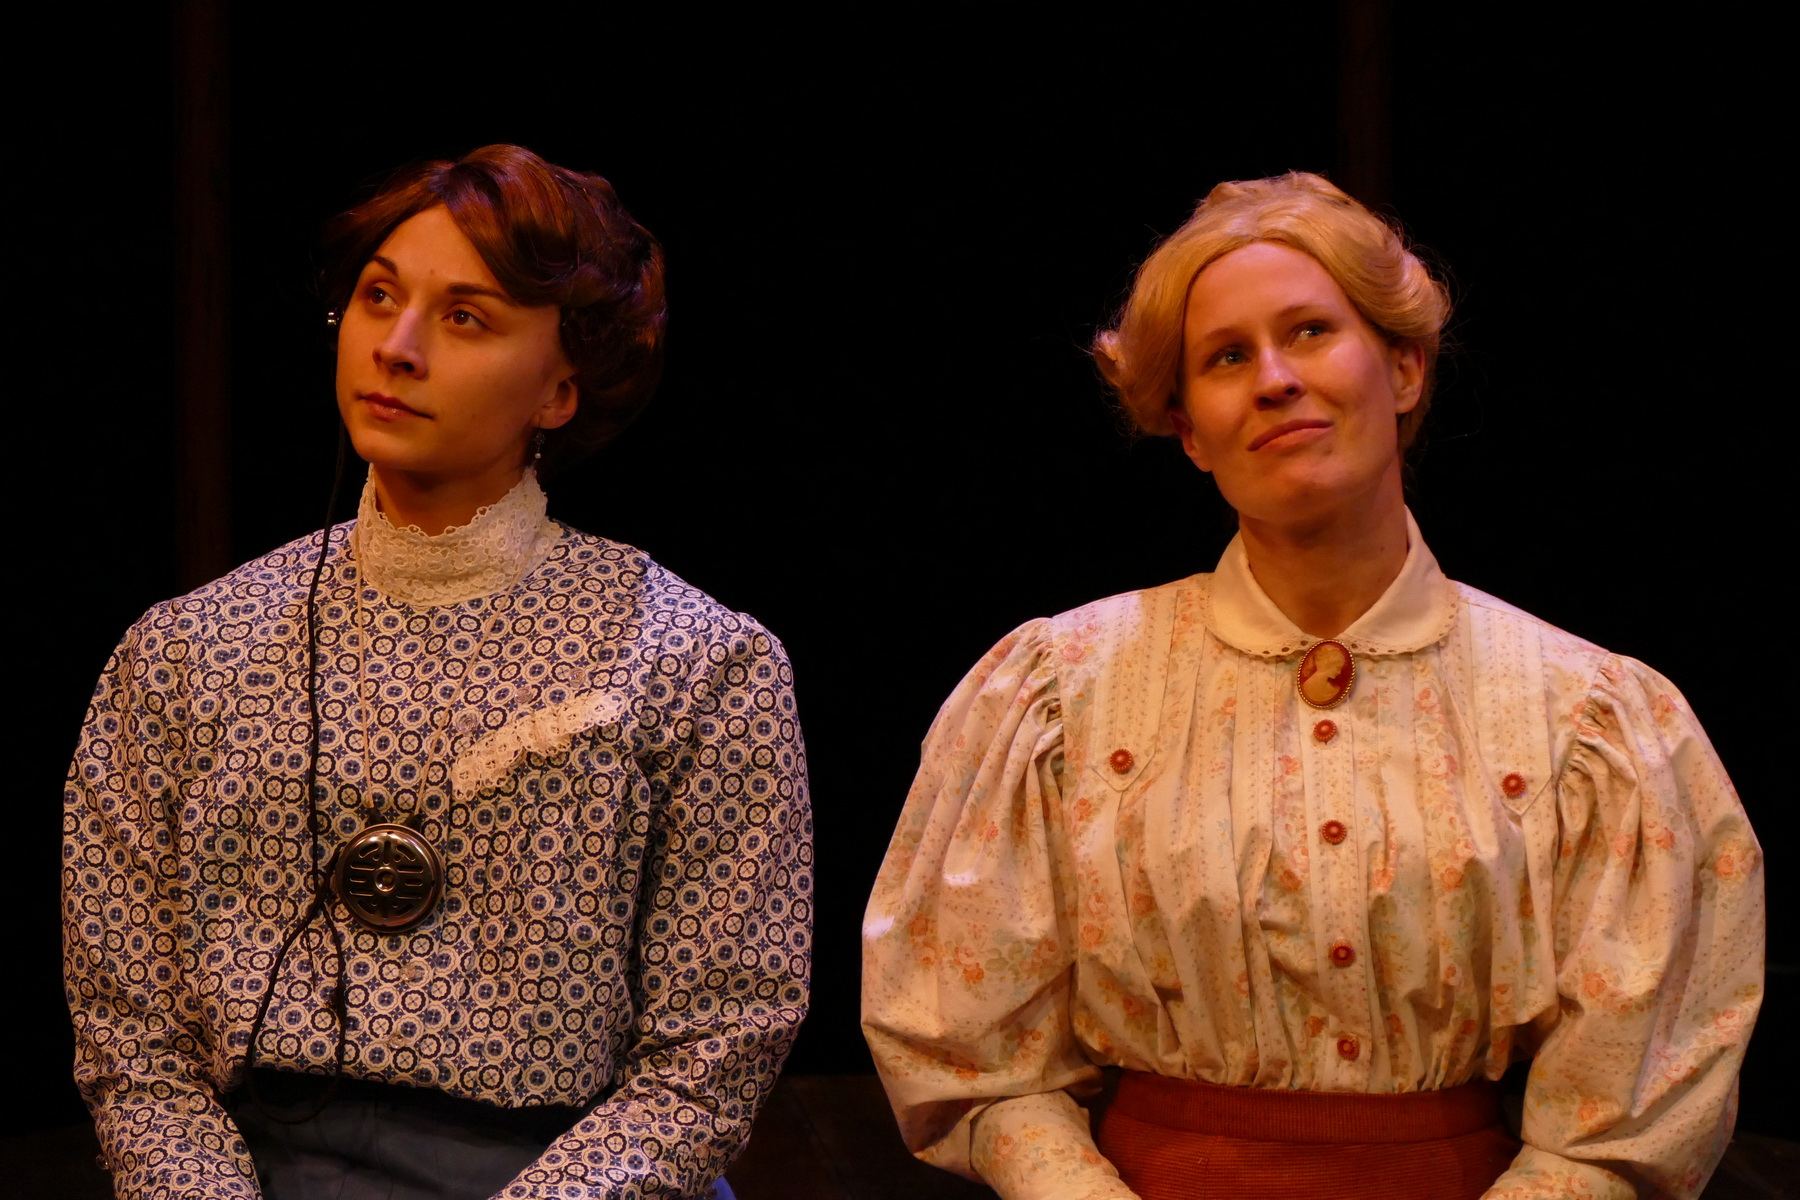 Brittany Gaul as Henrietta Leavitt and Jill Kenderes as Margaret Leavitt